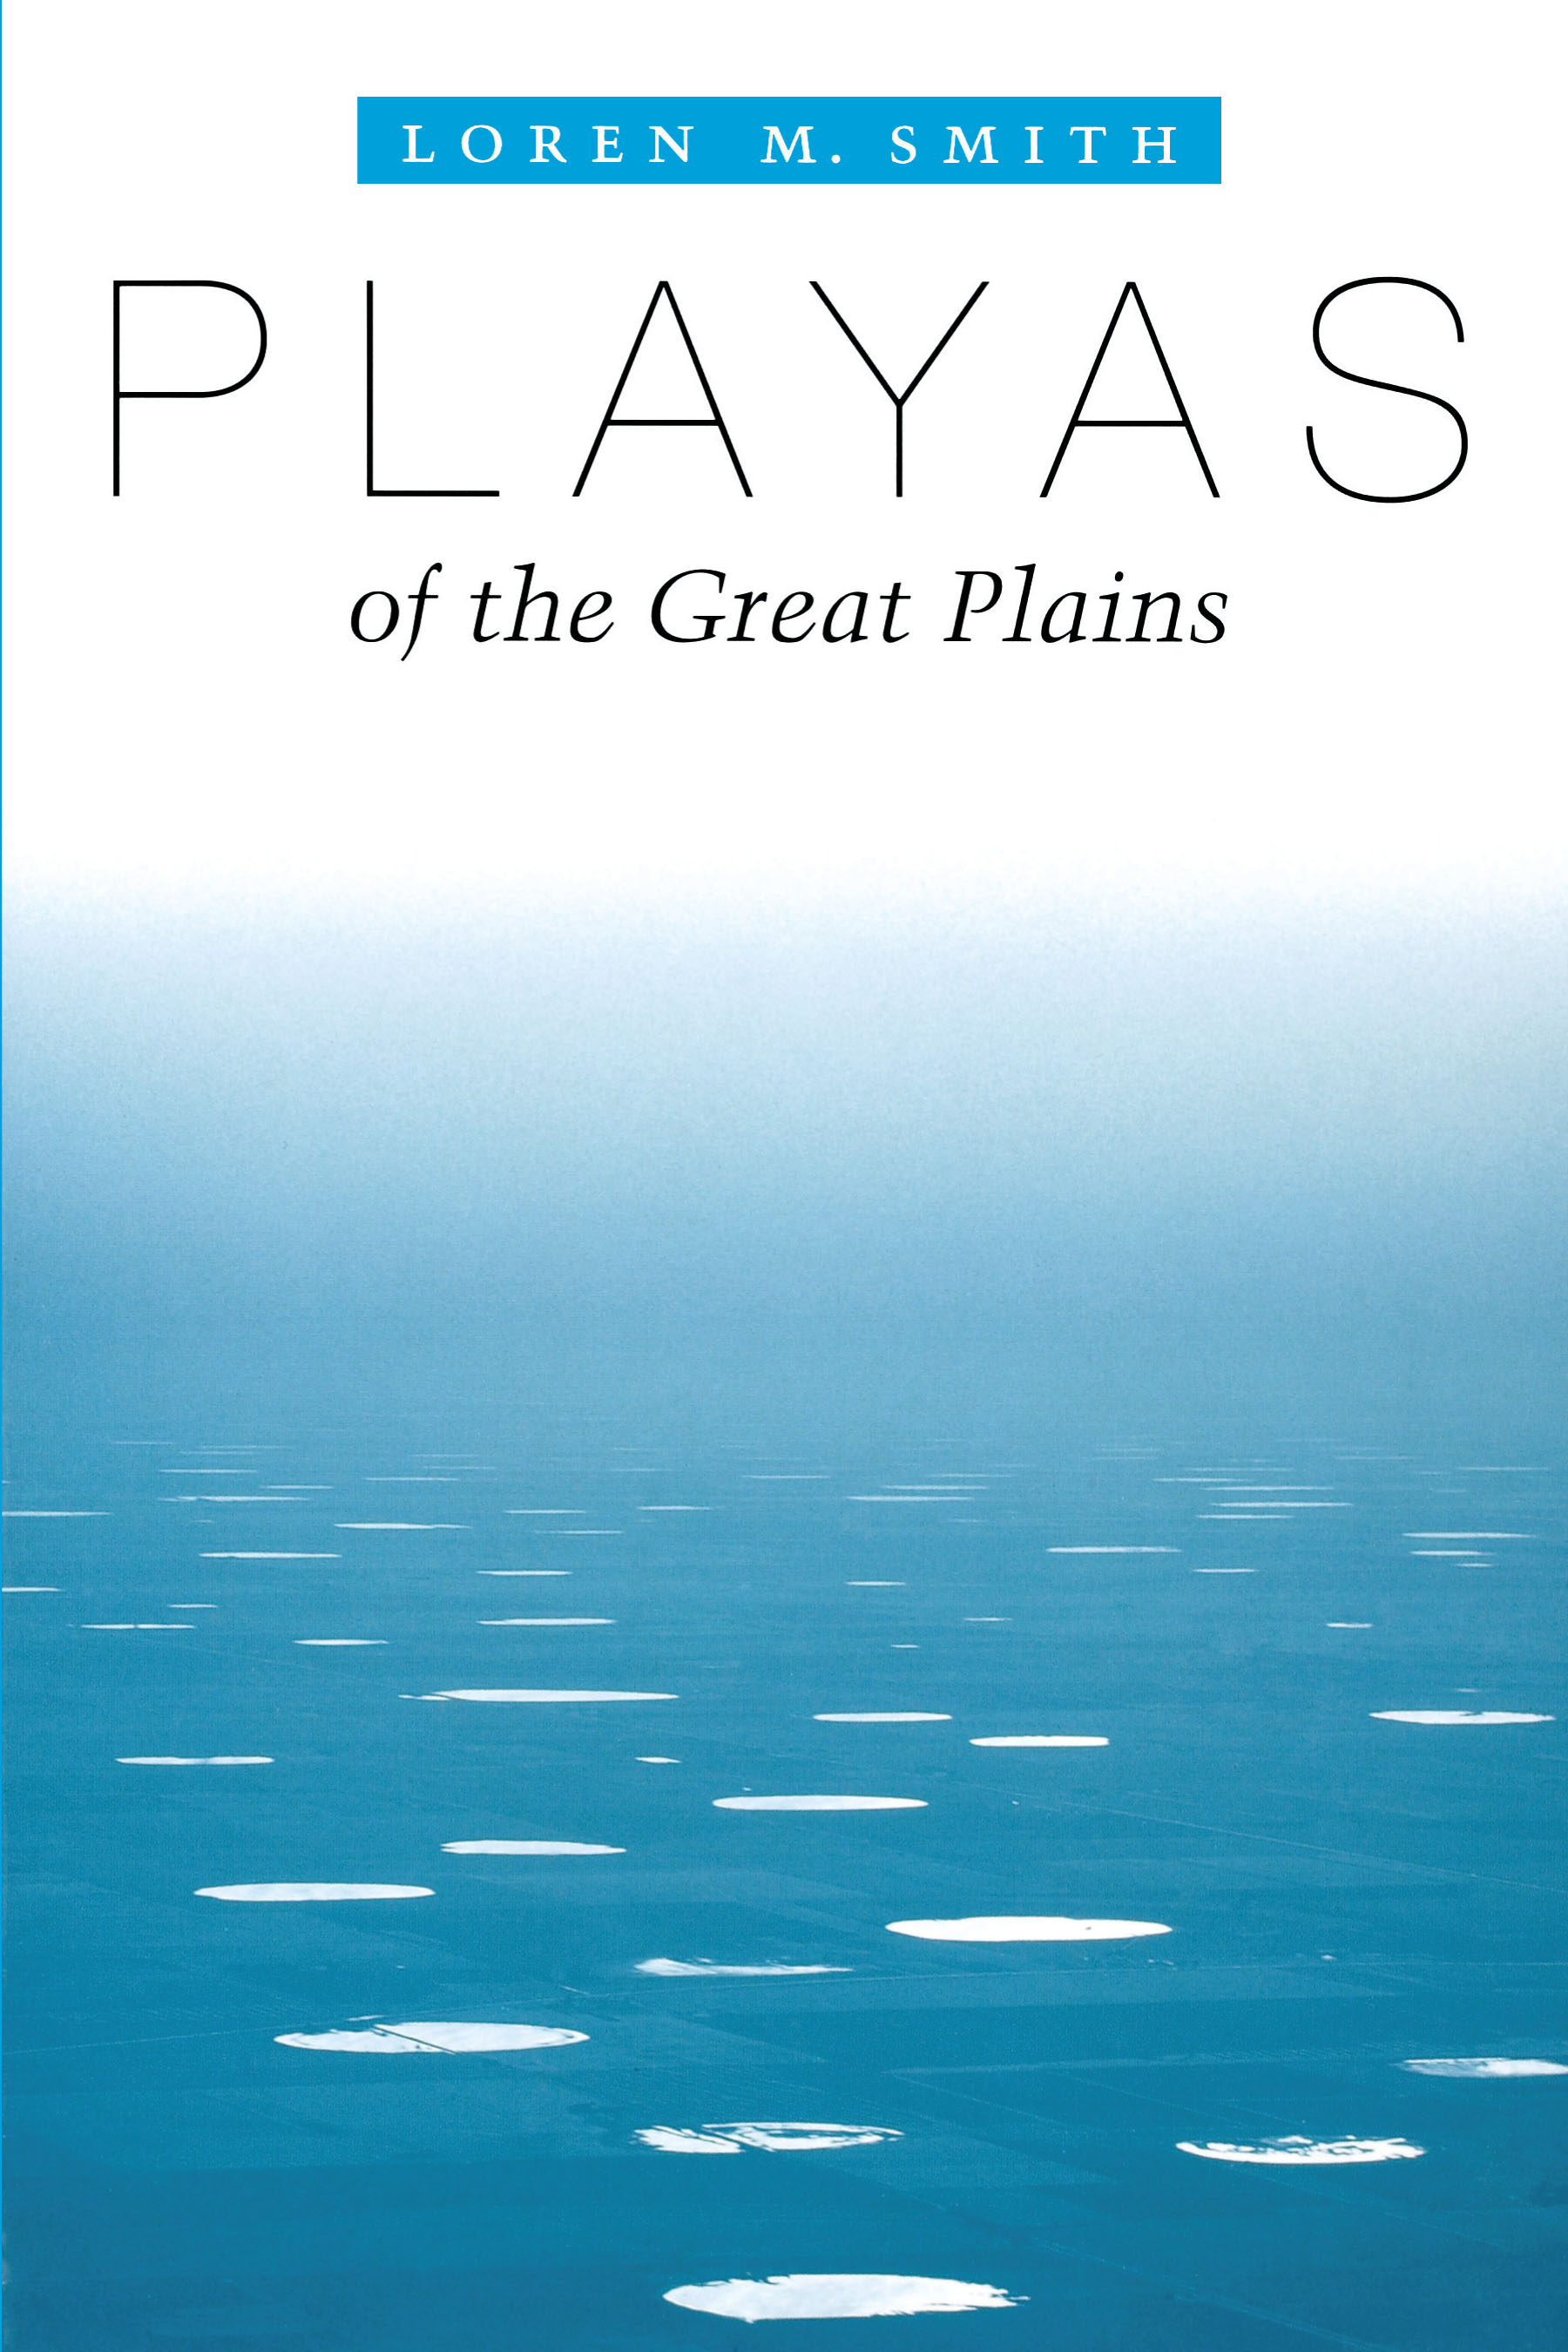 Cover of Playas of the Great Plains